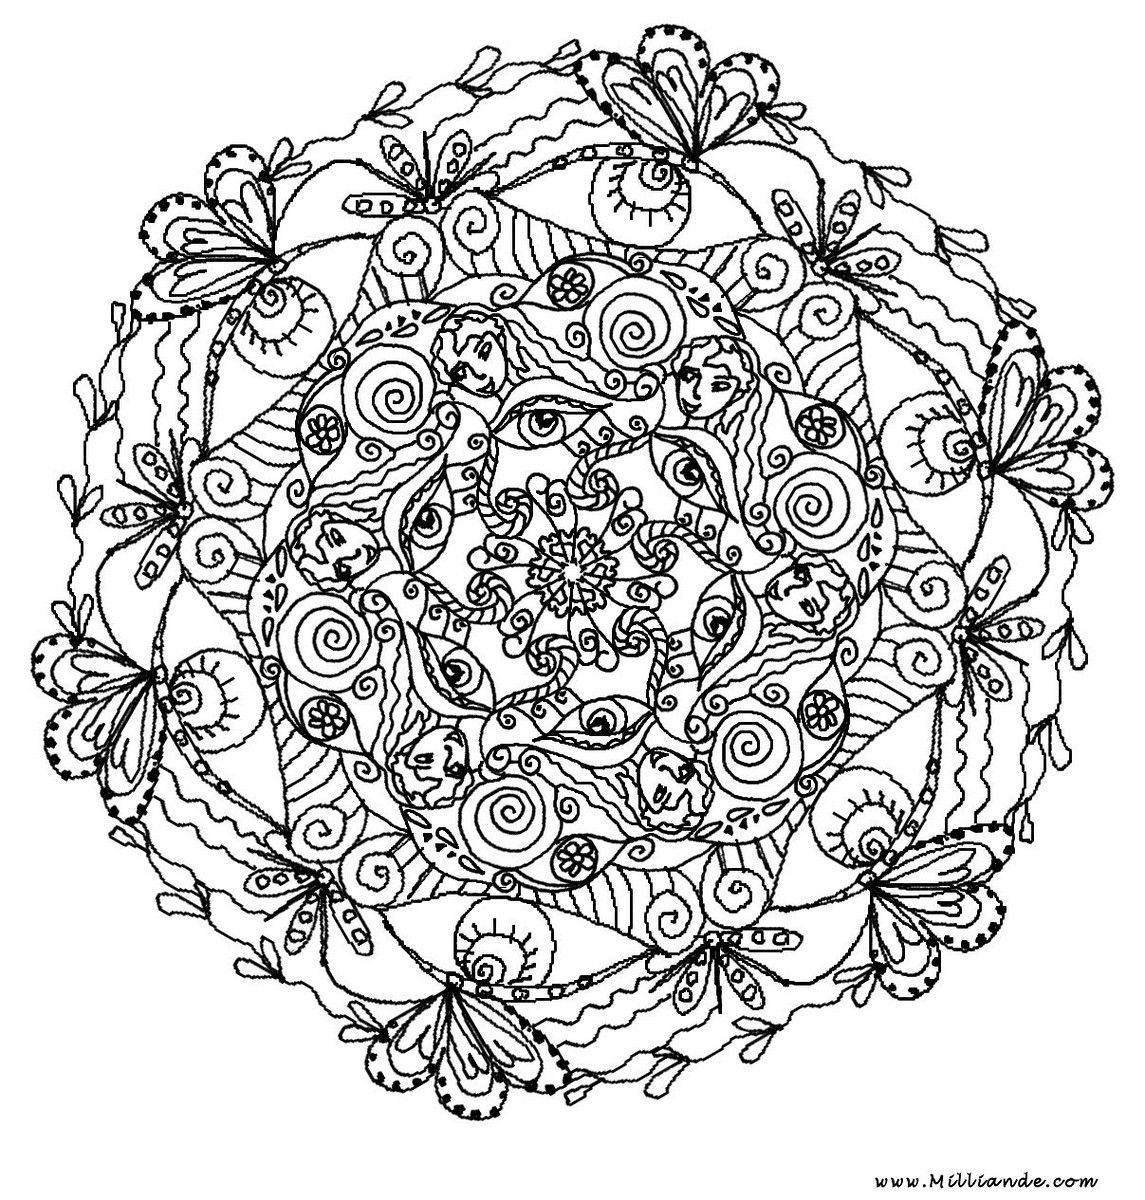 Difficult butterfly coloring pages - Geometric Butterfly Coloring Pages Center Yourself With Mandalas Coloring Pages